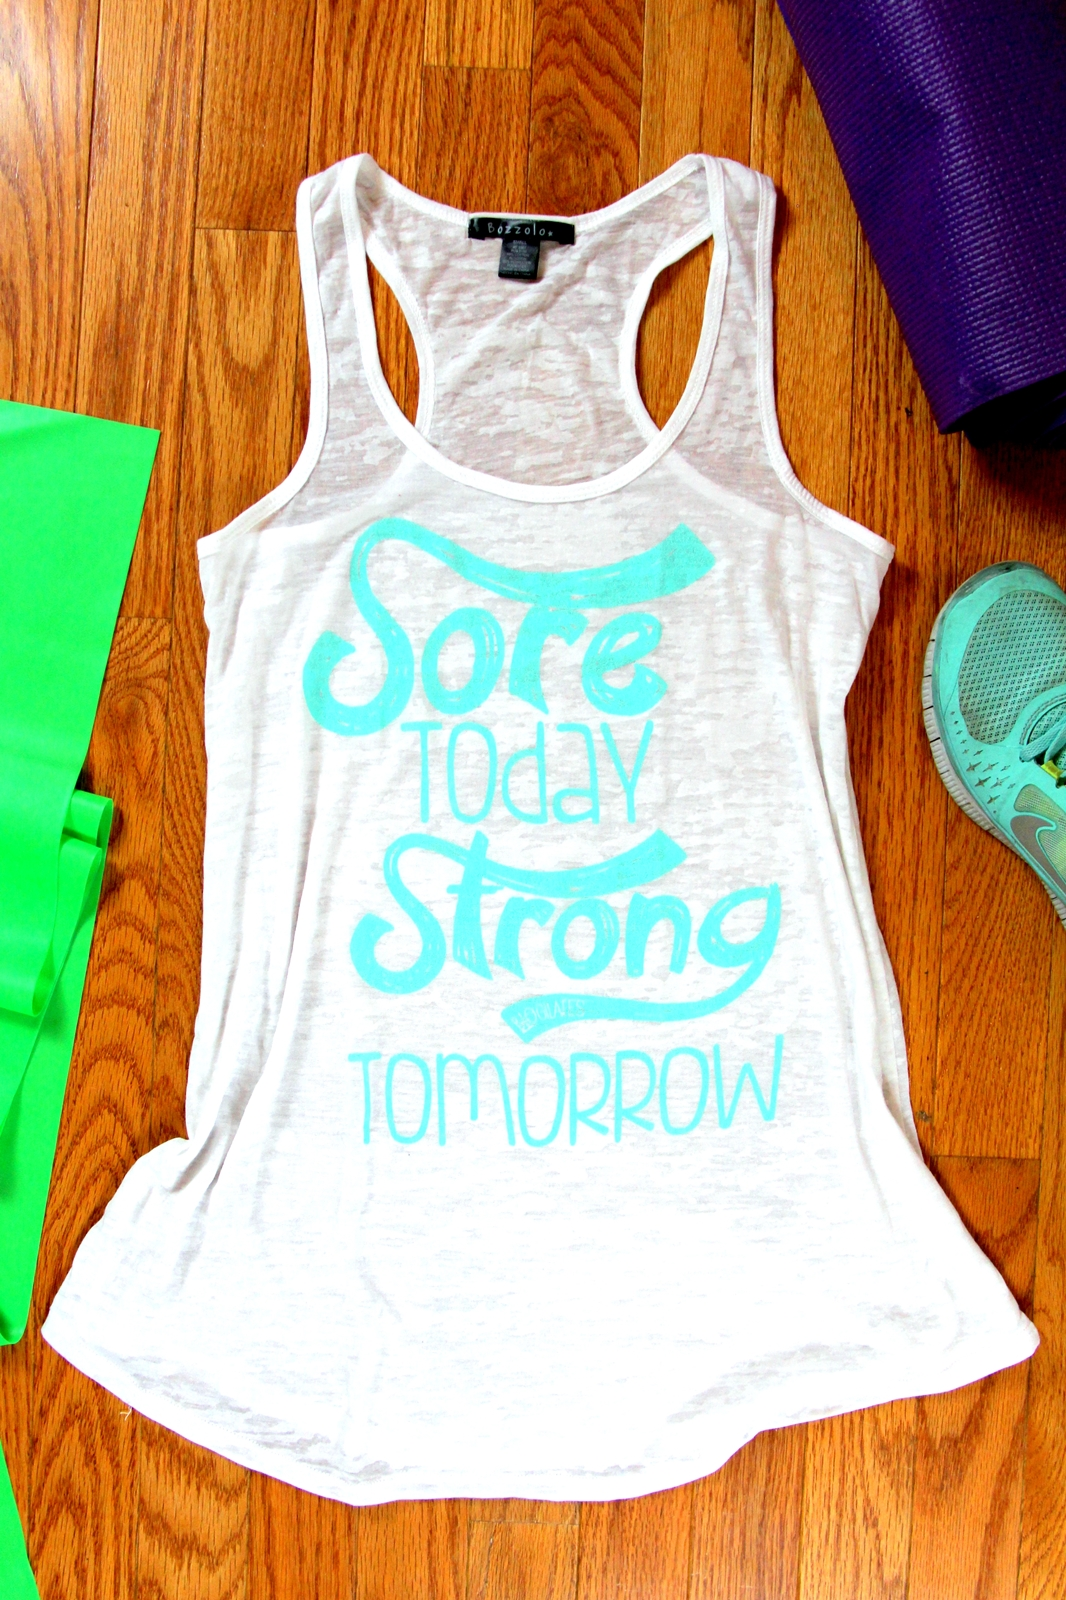 oGorgeous Gym Boutique - Sore Today Strong Tomorrow Light Tank